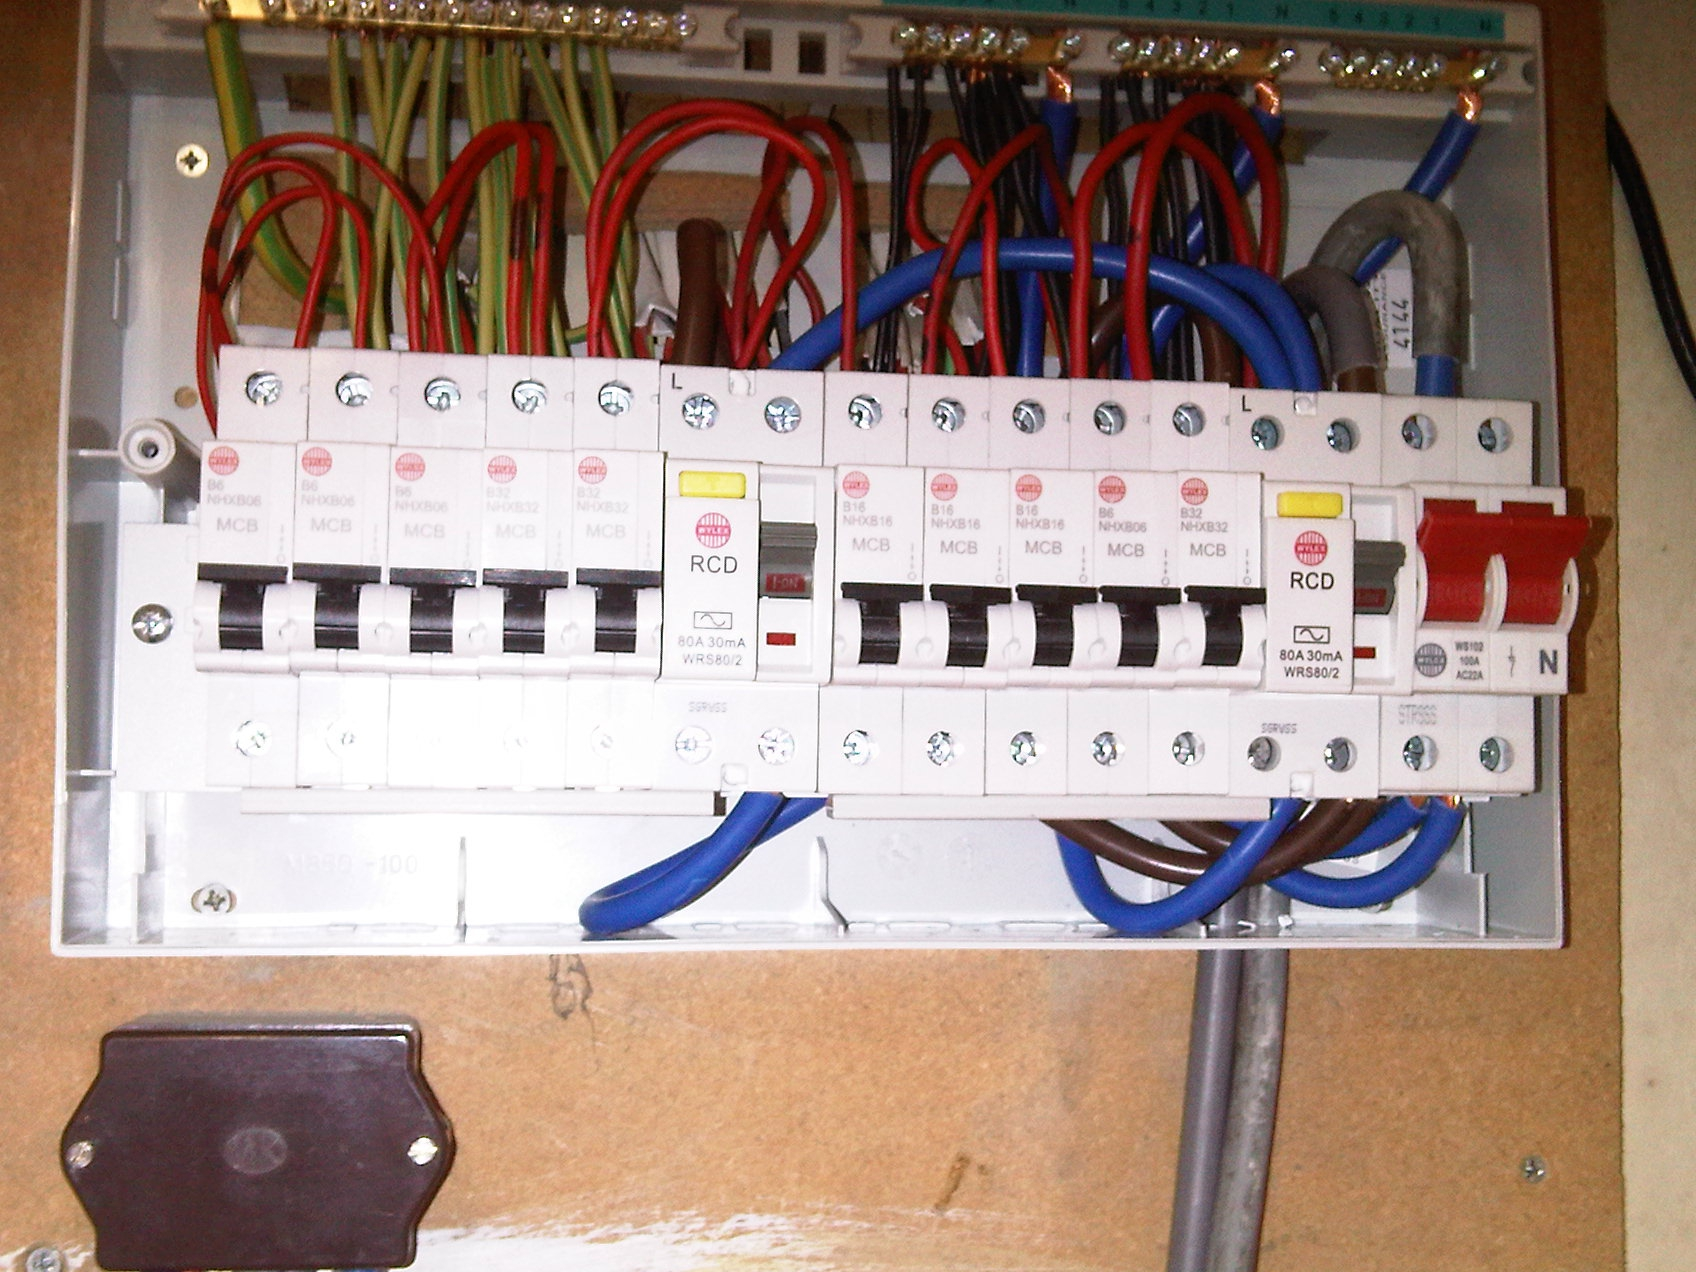 Fusebox 4 mk repair centre notices & news fuse box keeps tripping lights at edmiracle.co